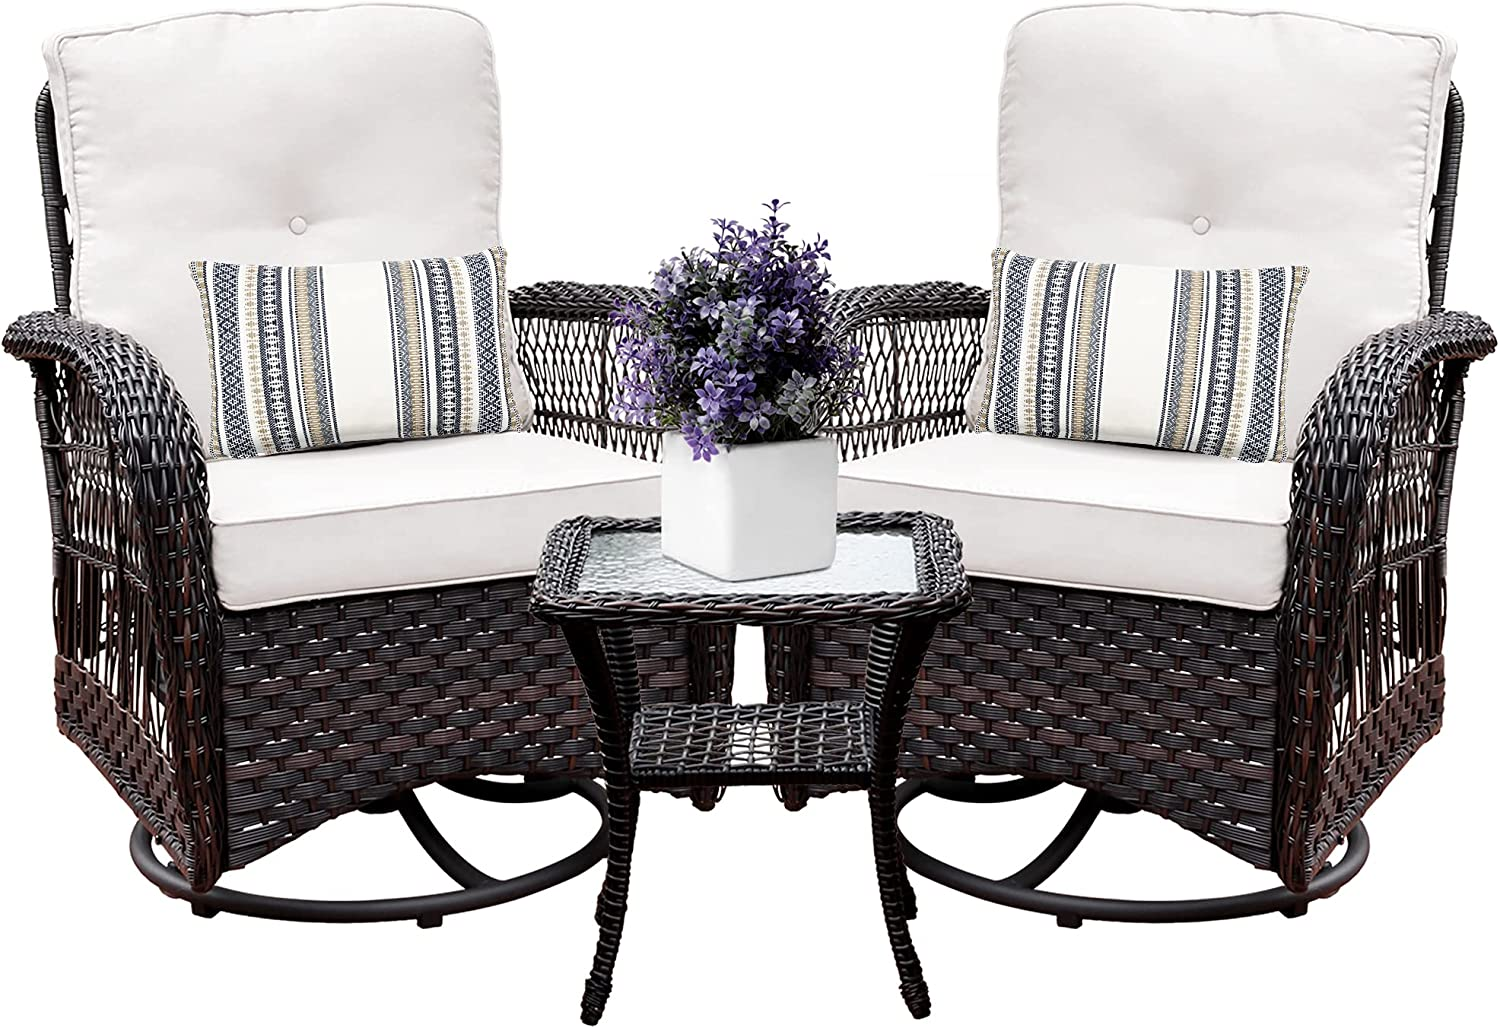 Harlie Stone Outdoor Swivel Rocker Patio Chairs M 2 and Set Max 84% OFF Spring new work one after another of